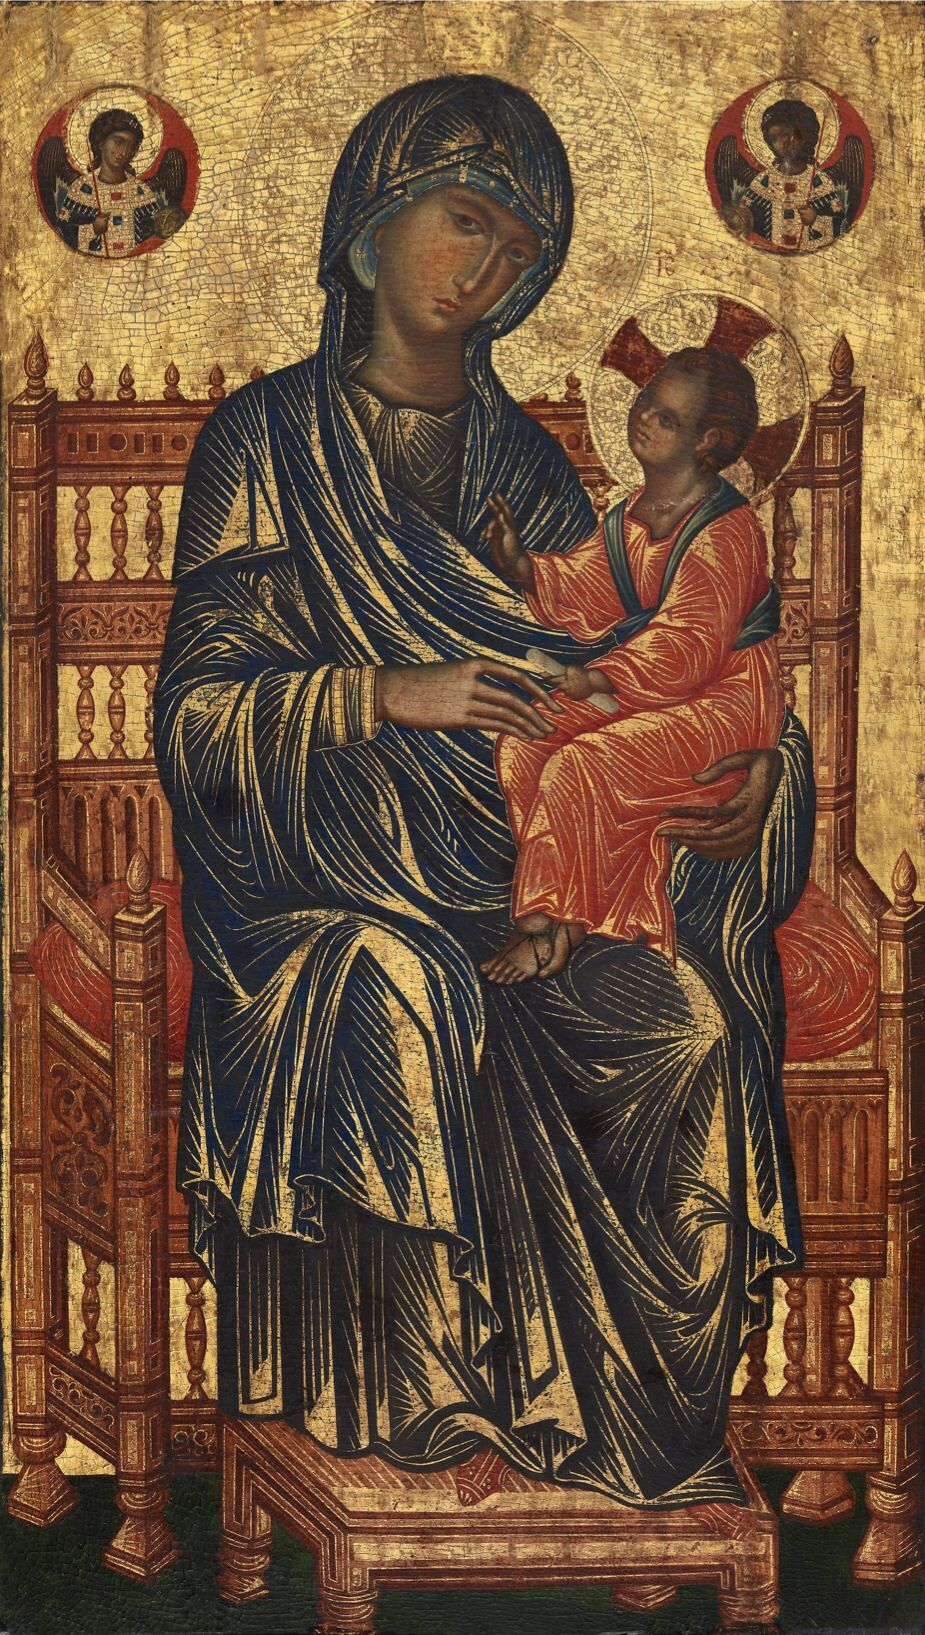 Byzantine 13th Century Enthroned Madonna and Child